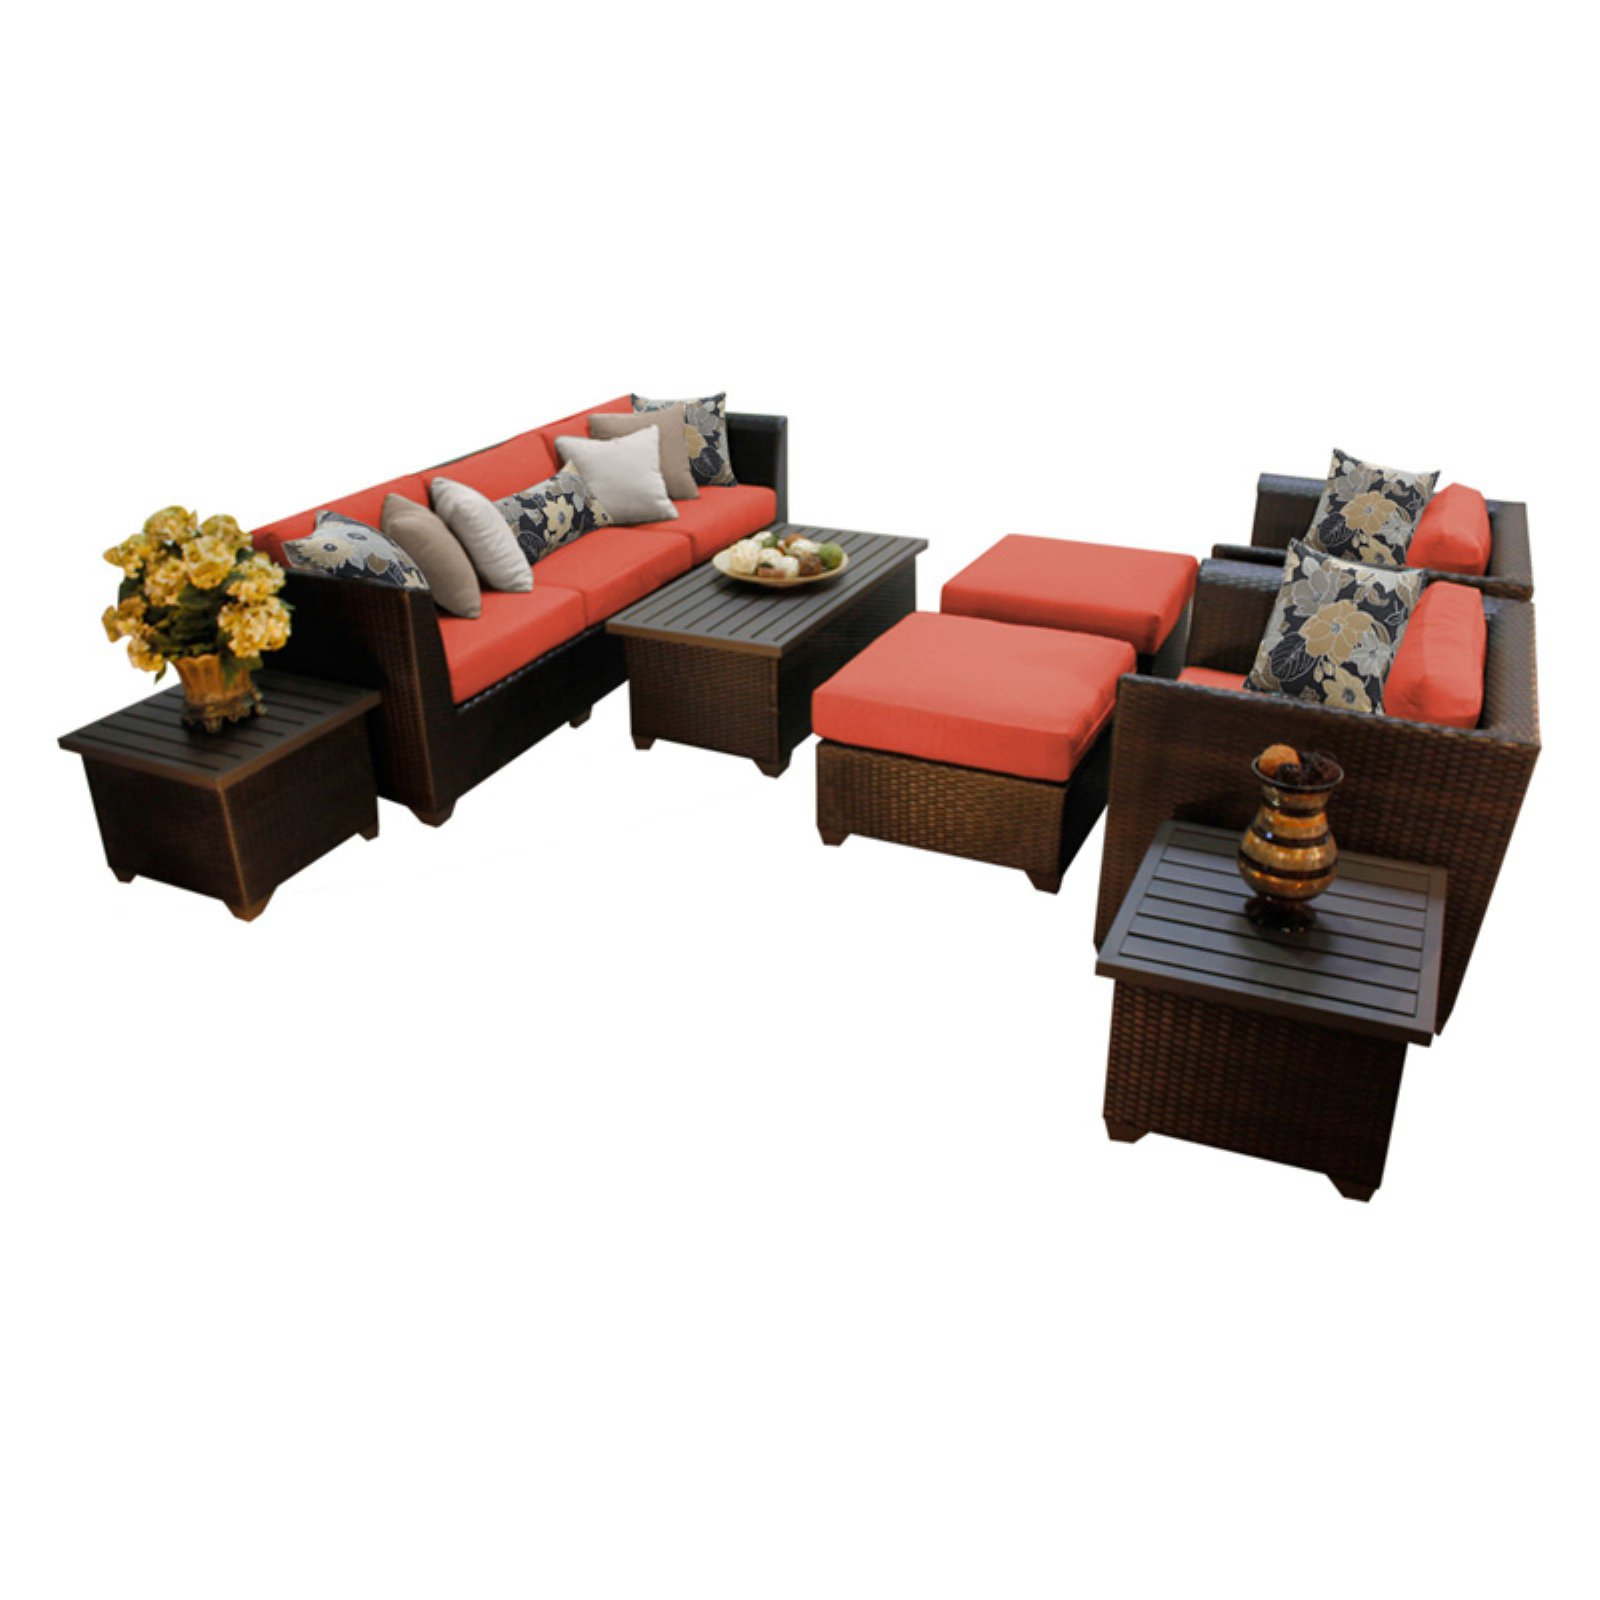 TK Classics Barbados Wicker 10 Piece Patio Conversation Set with 2 Sets of Cushion Covers